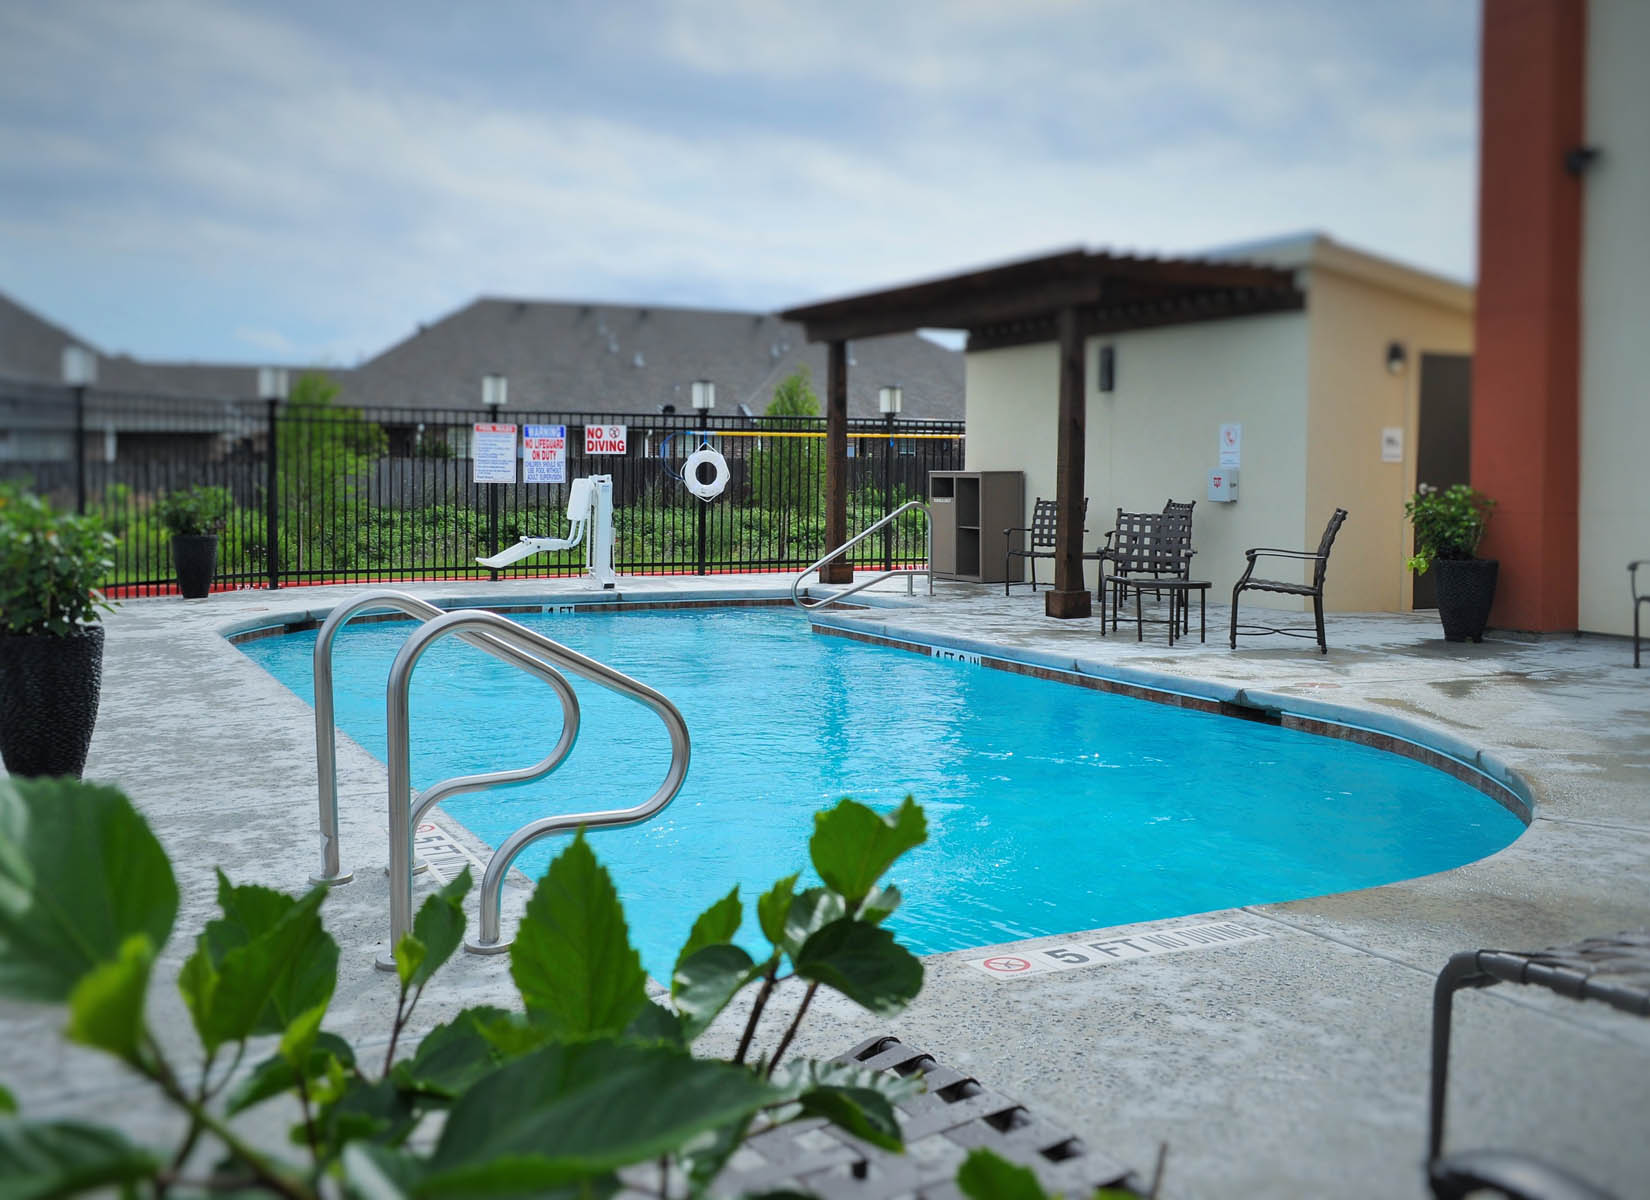 Bryan college station commercial pools photo gallery - Best way to finance a swimming pool ...